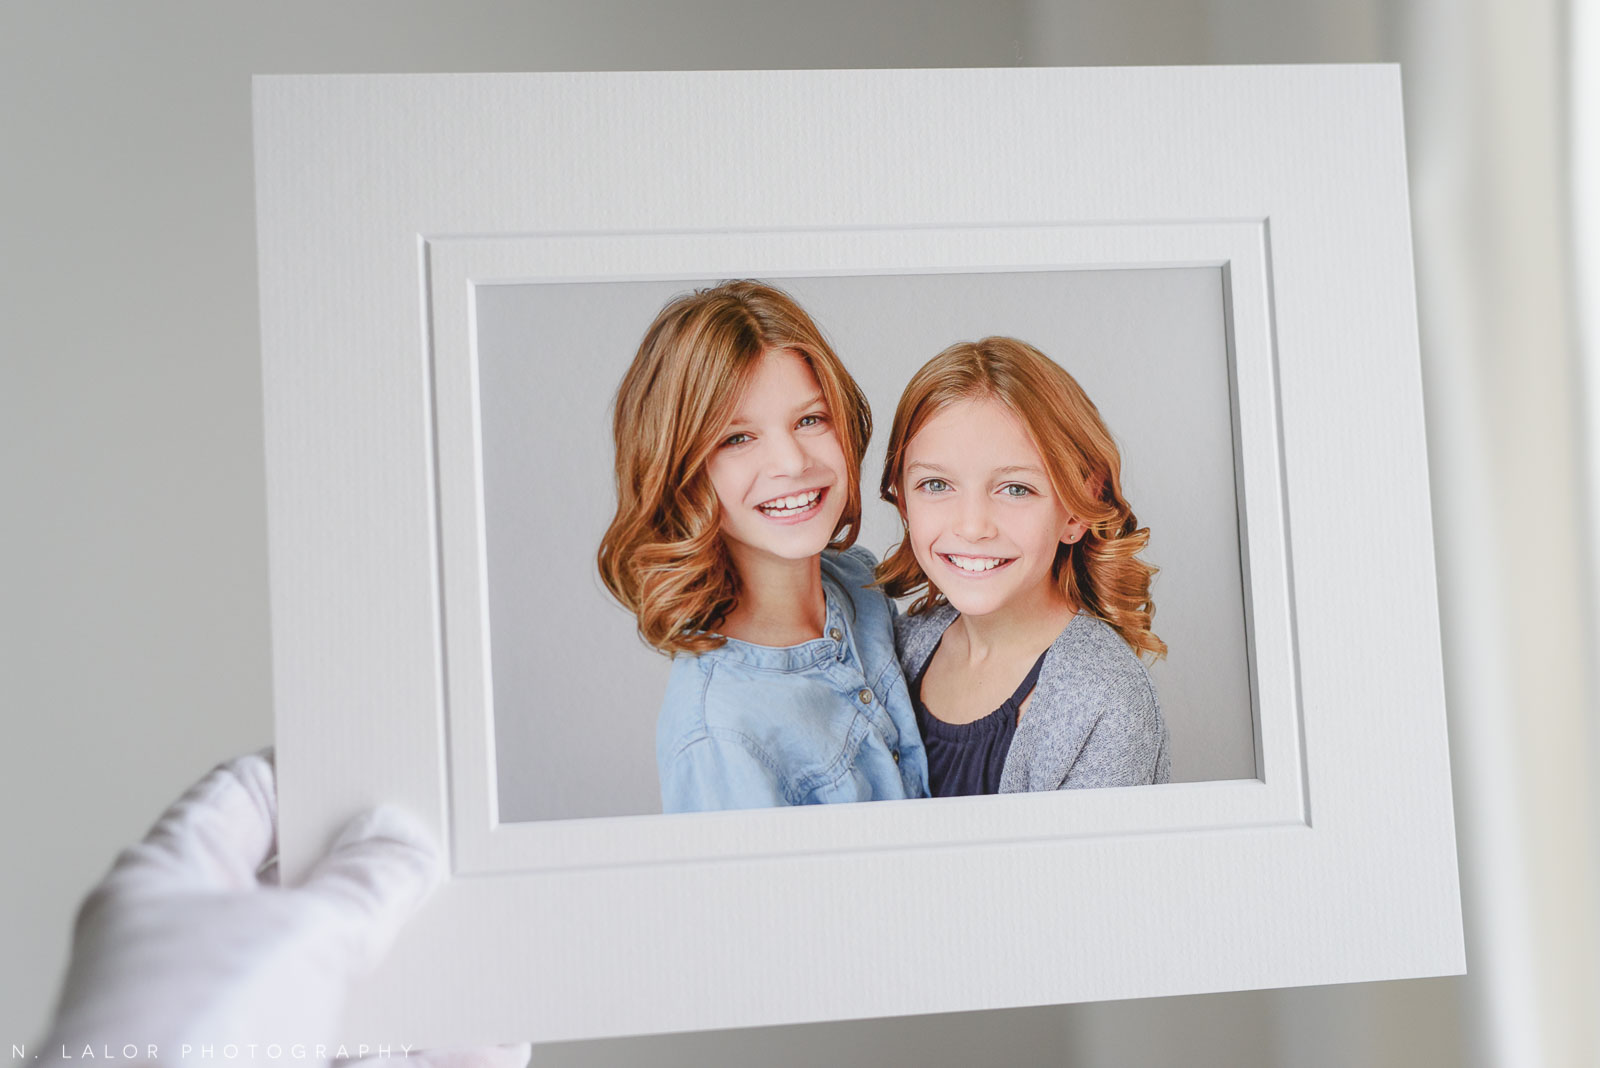 Sisters. Portrait by N. Lalor Photography in Greenwich, Connecticut.